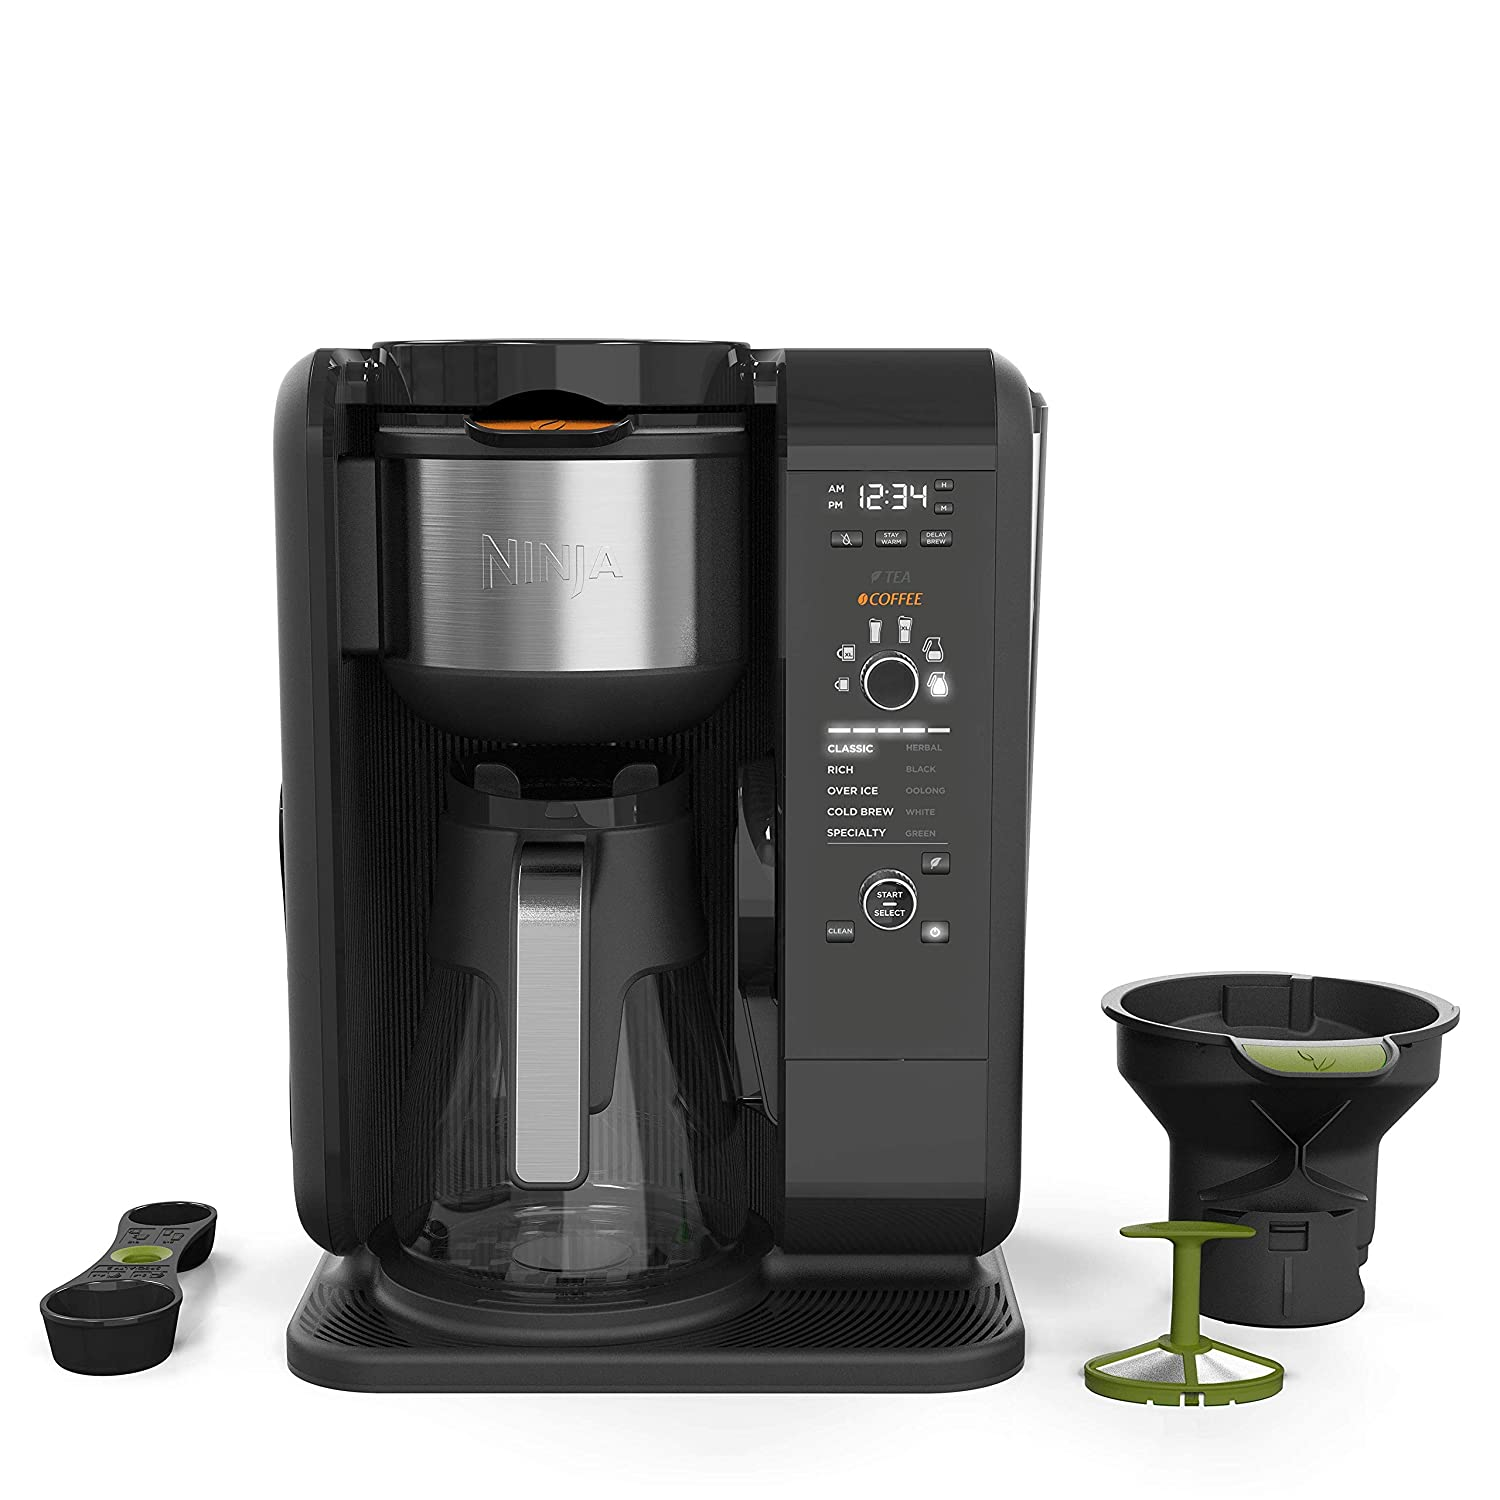 best drip coffee maker: ninja hot and cold brewed system